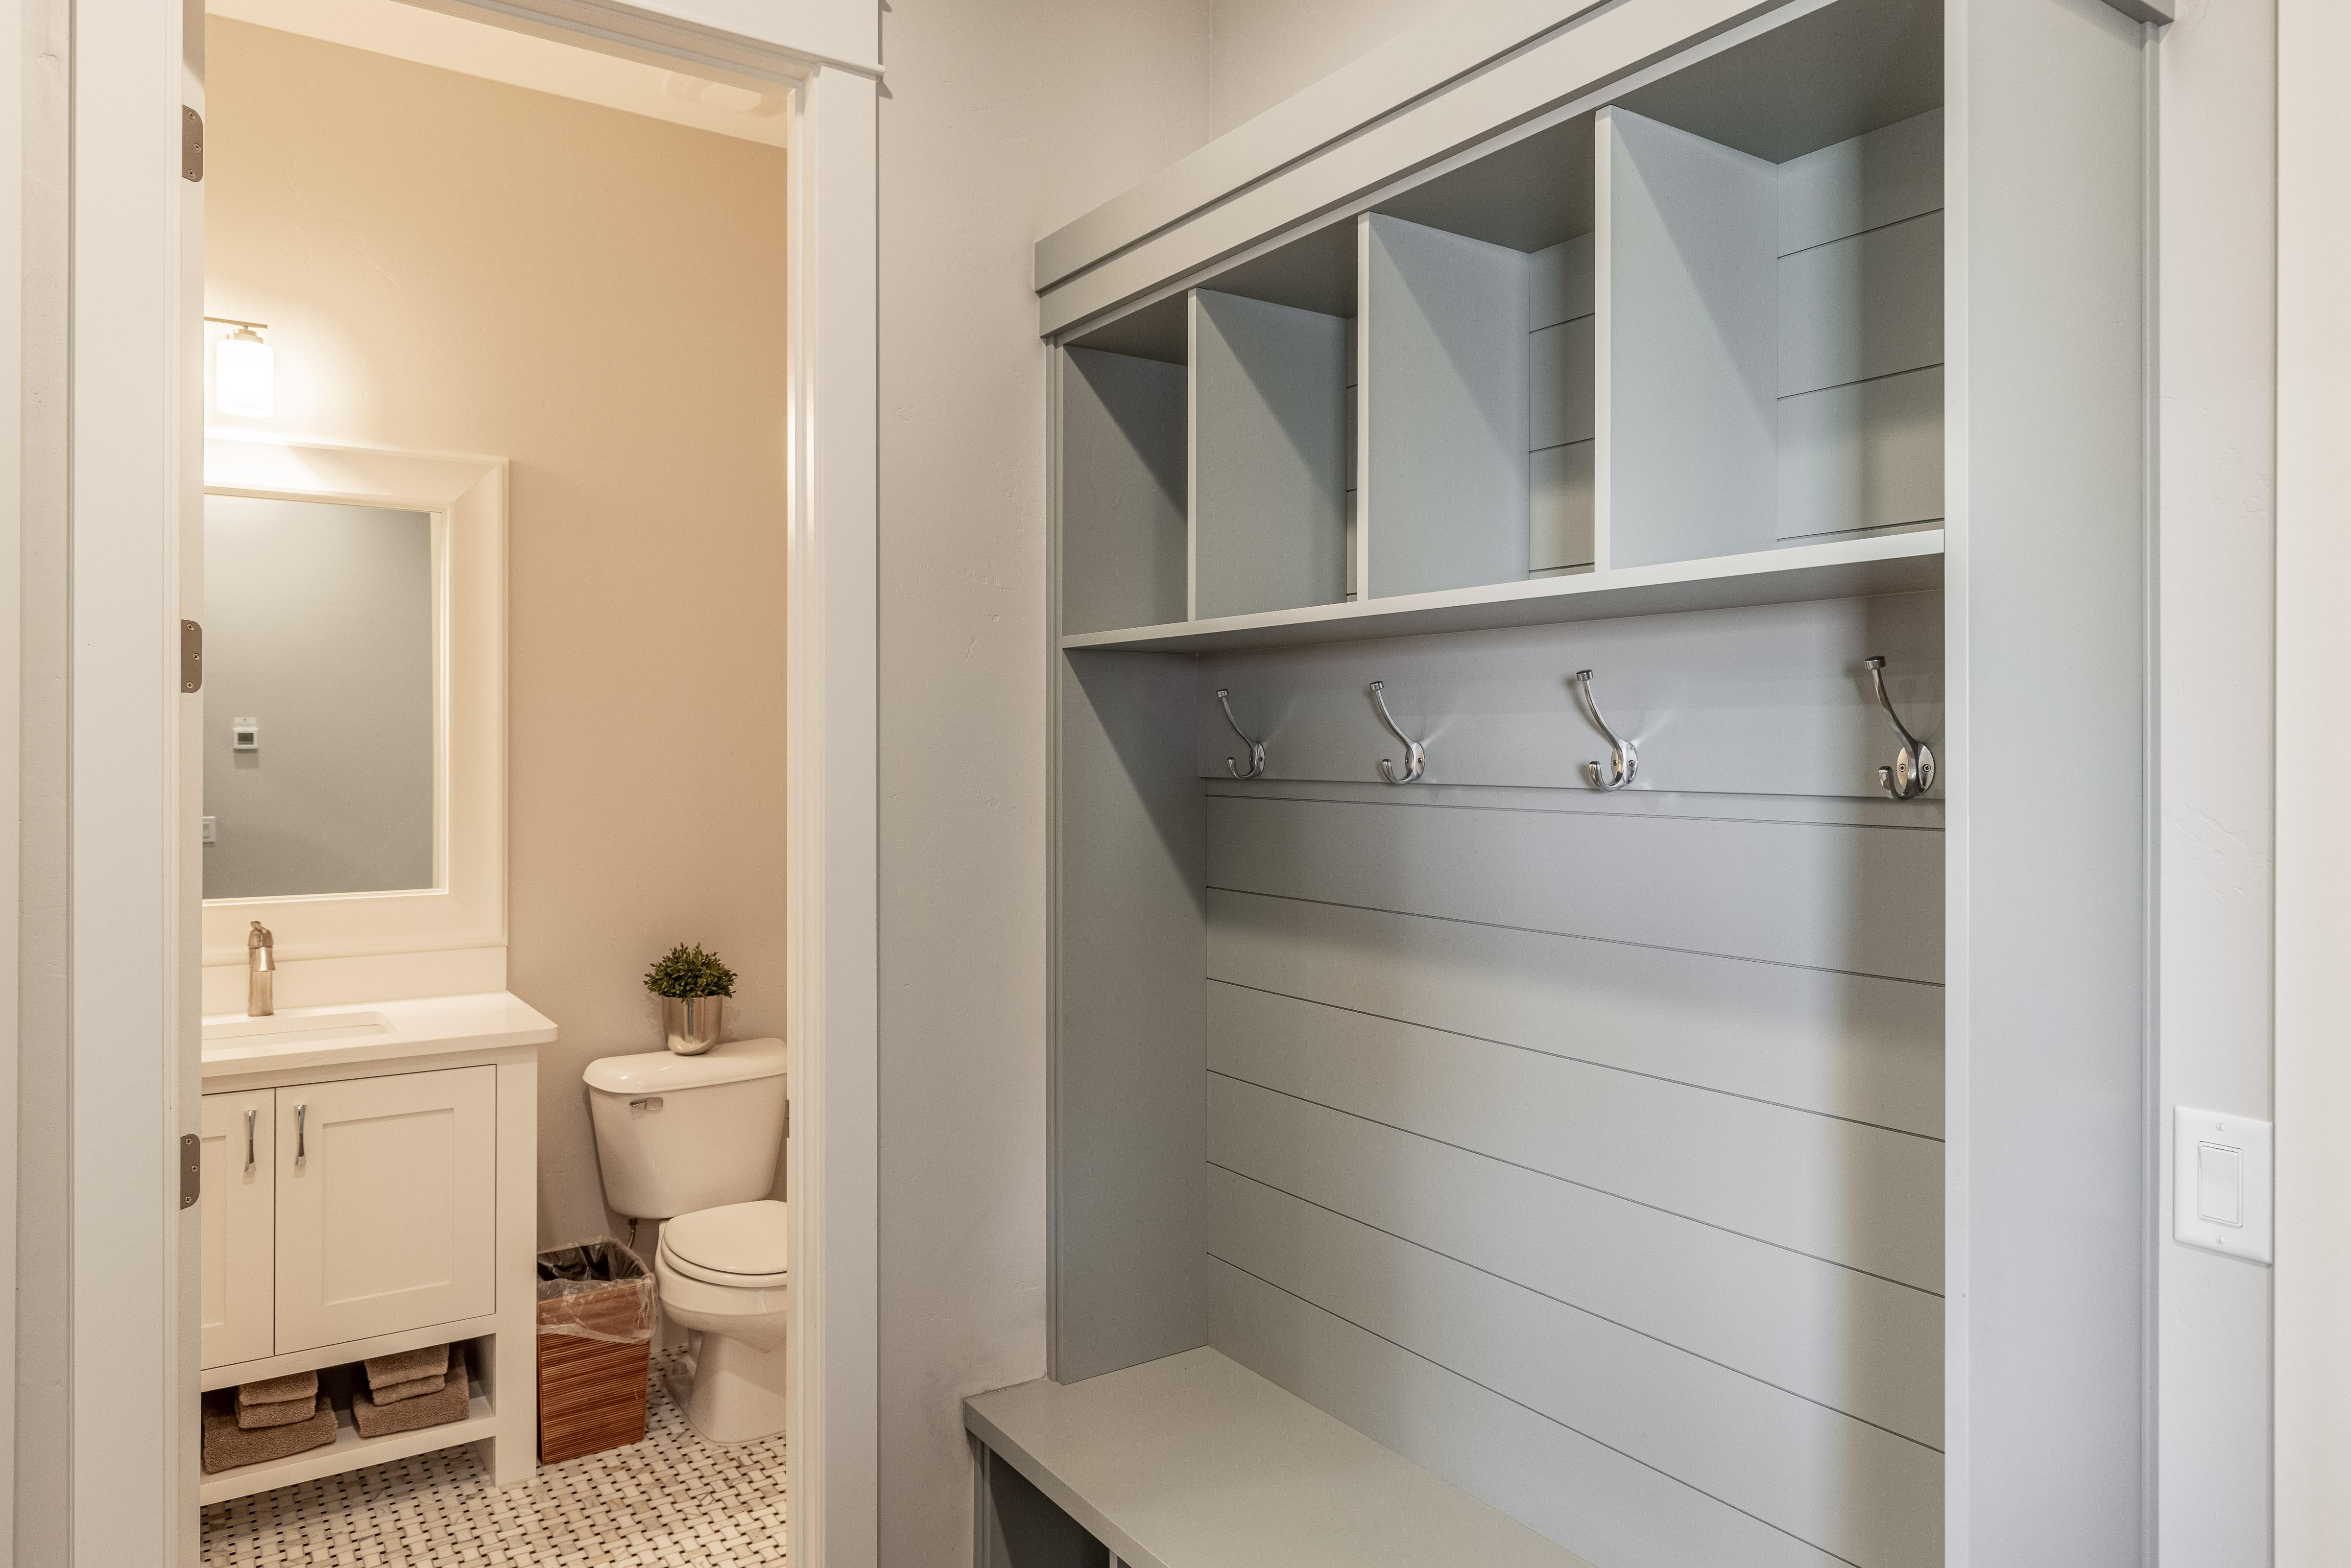 Mud room & half bathroom conveniently located for your guests.